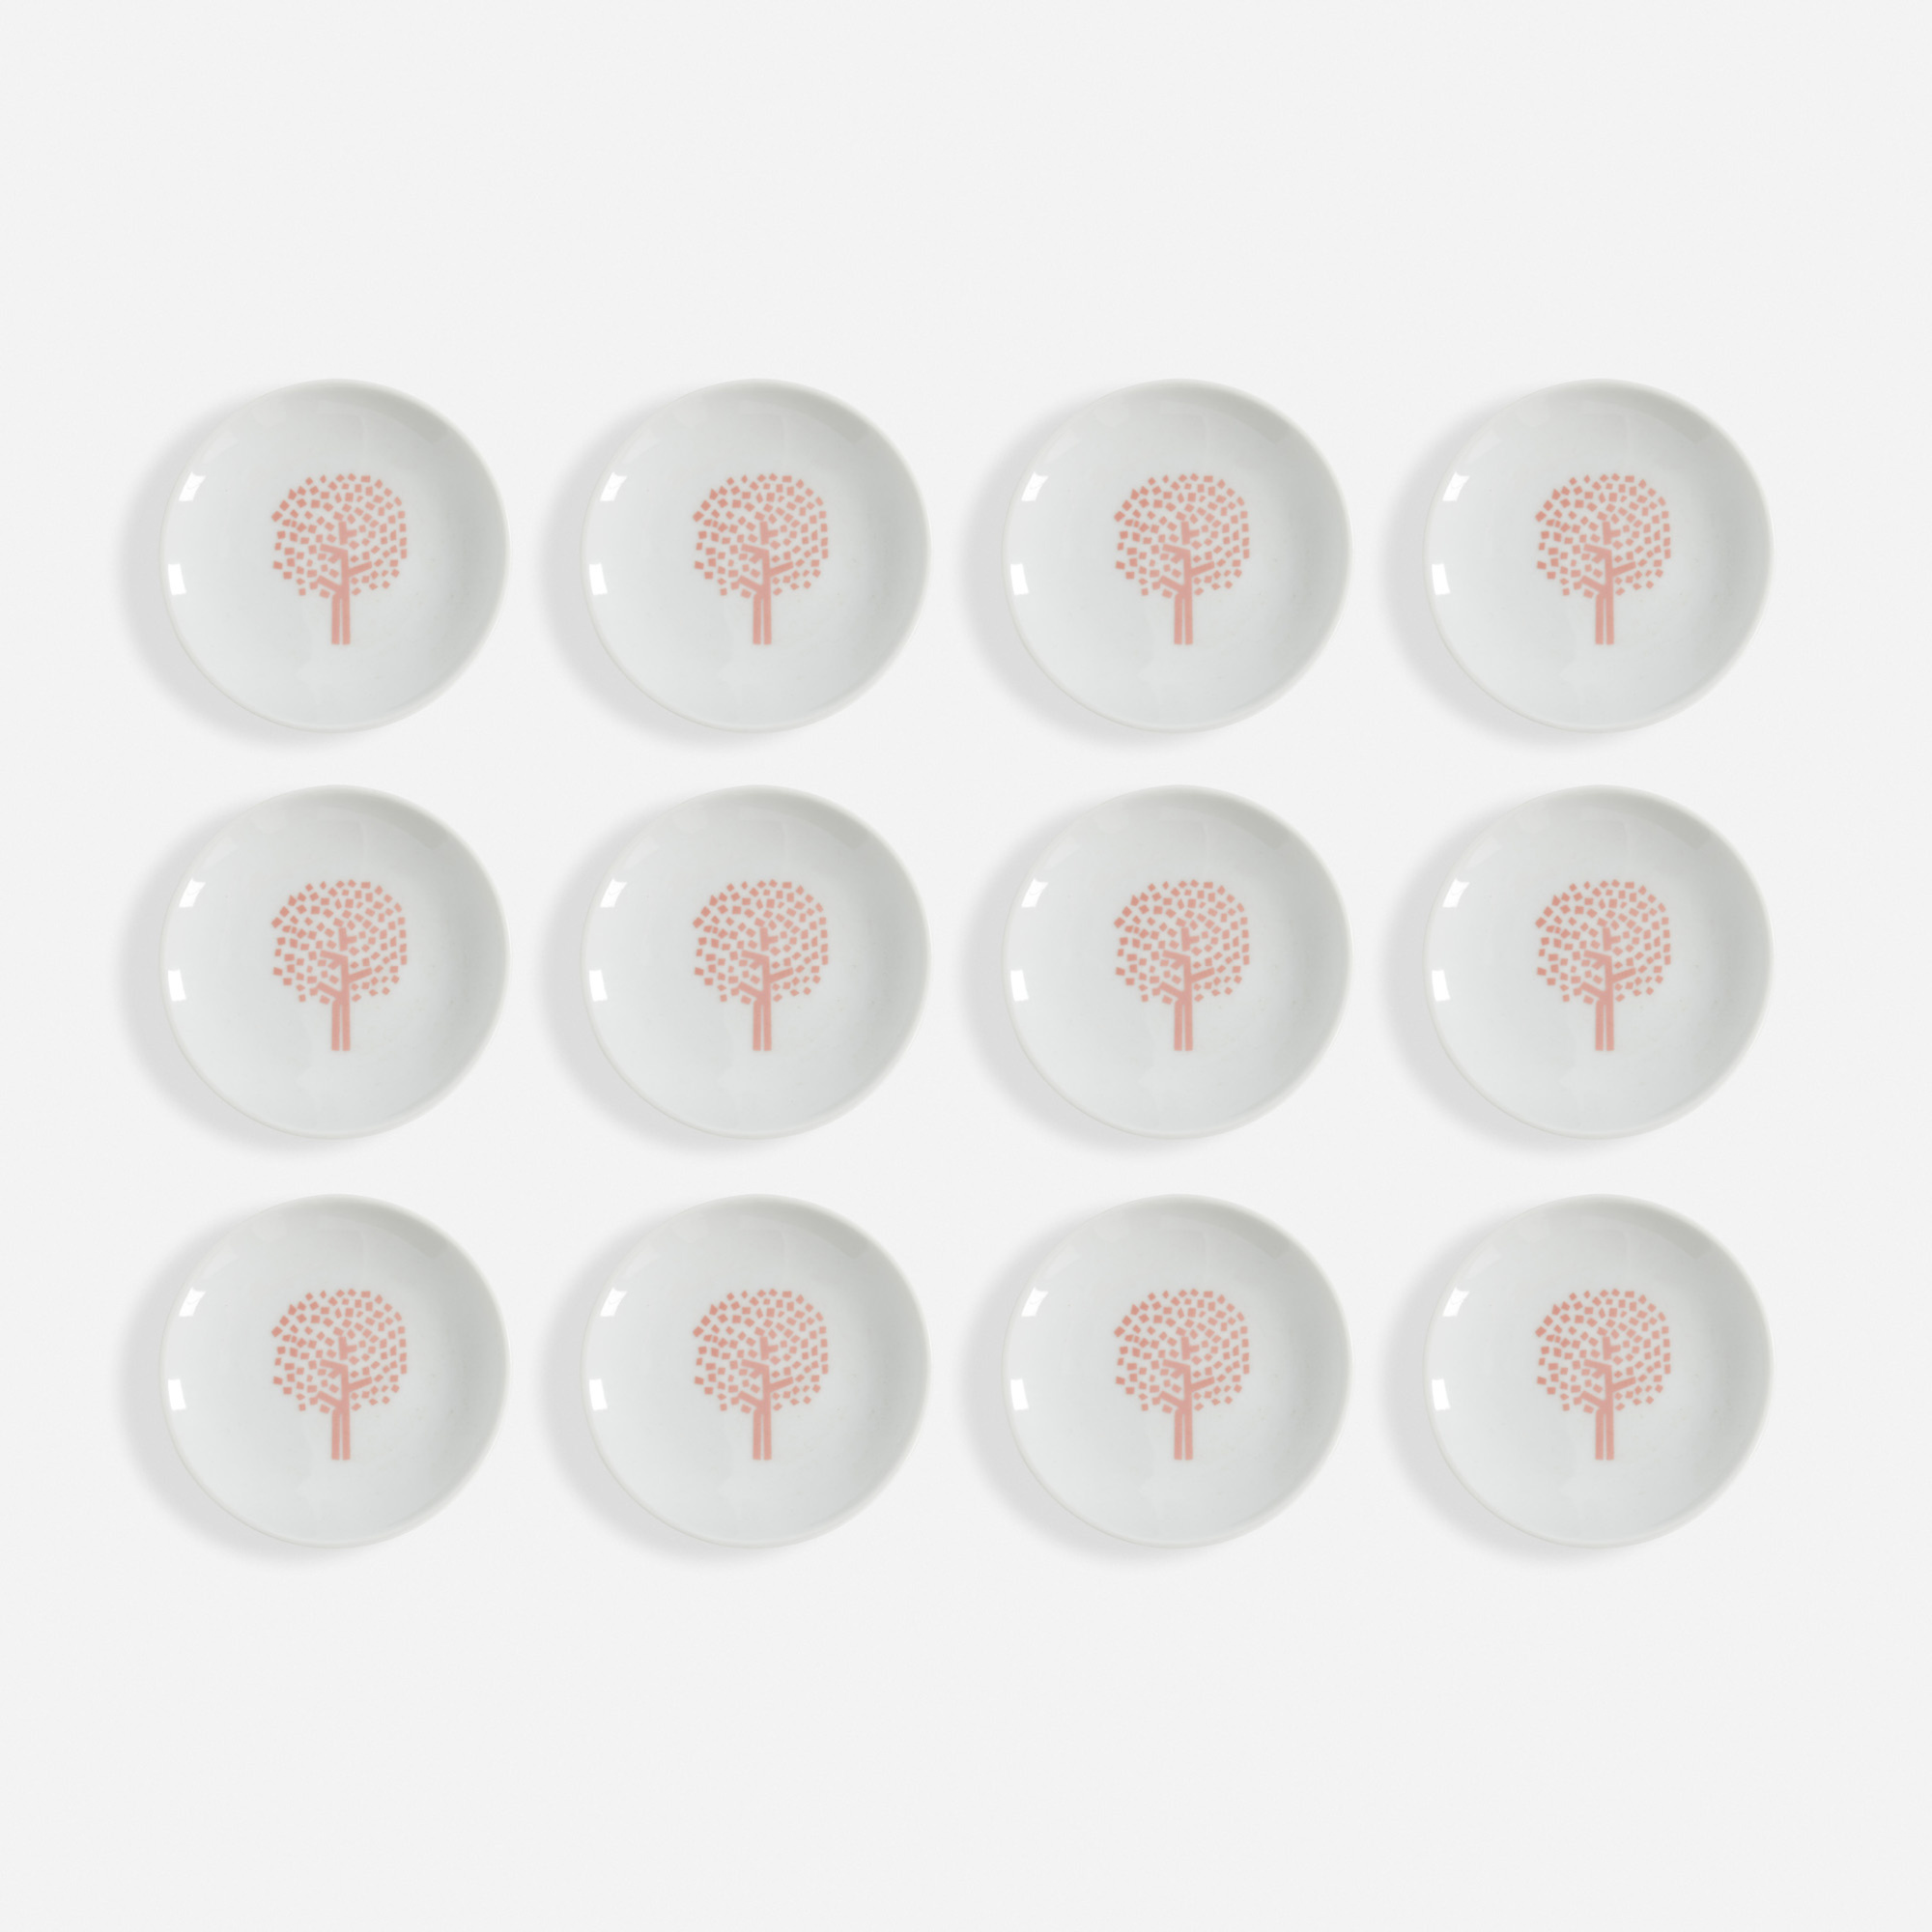 141:  / Four Seasons Spring ashtrays, set of twelve (1 of 1)